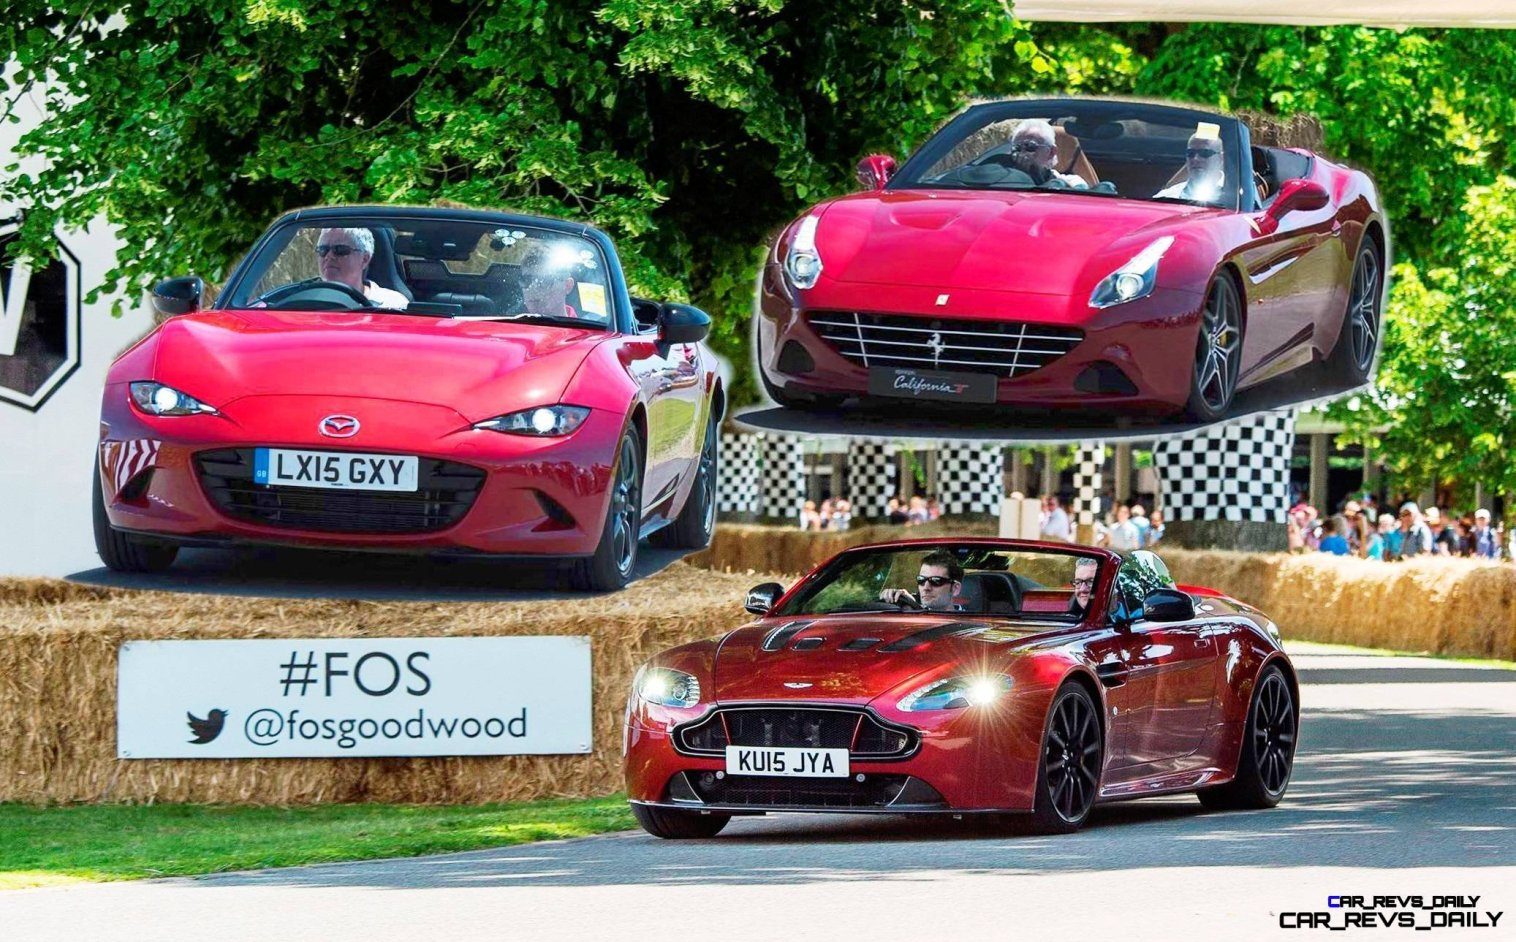 Goodwood-Festival-of-Speed-2szxd015---New-Cars-25